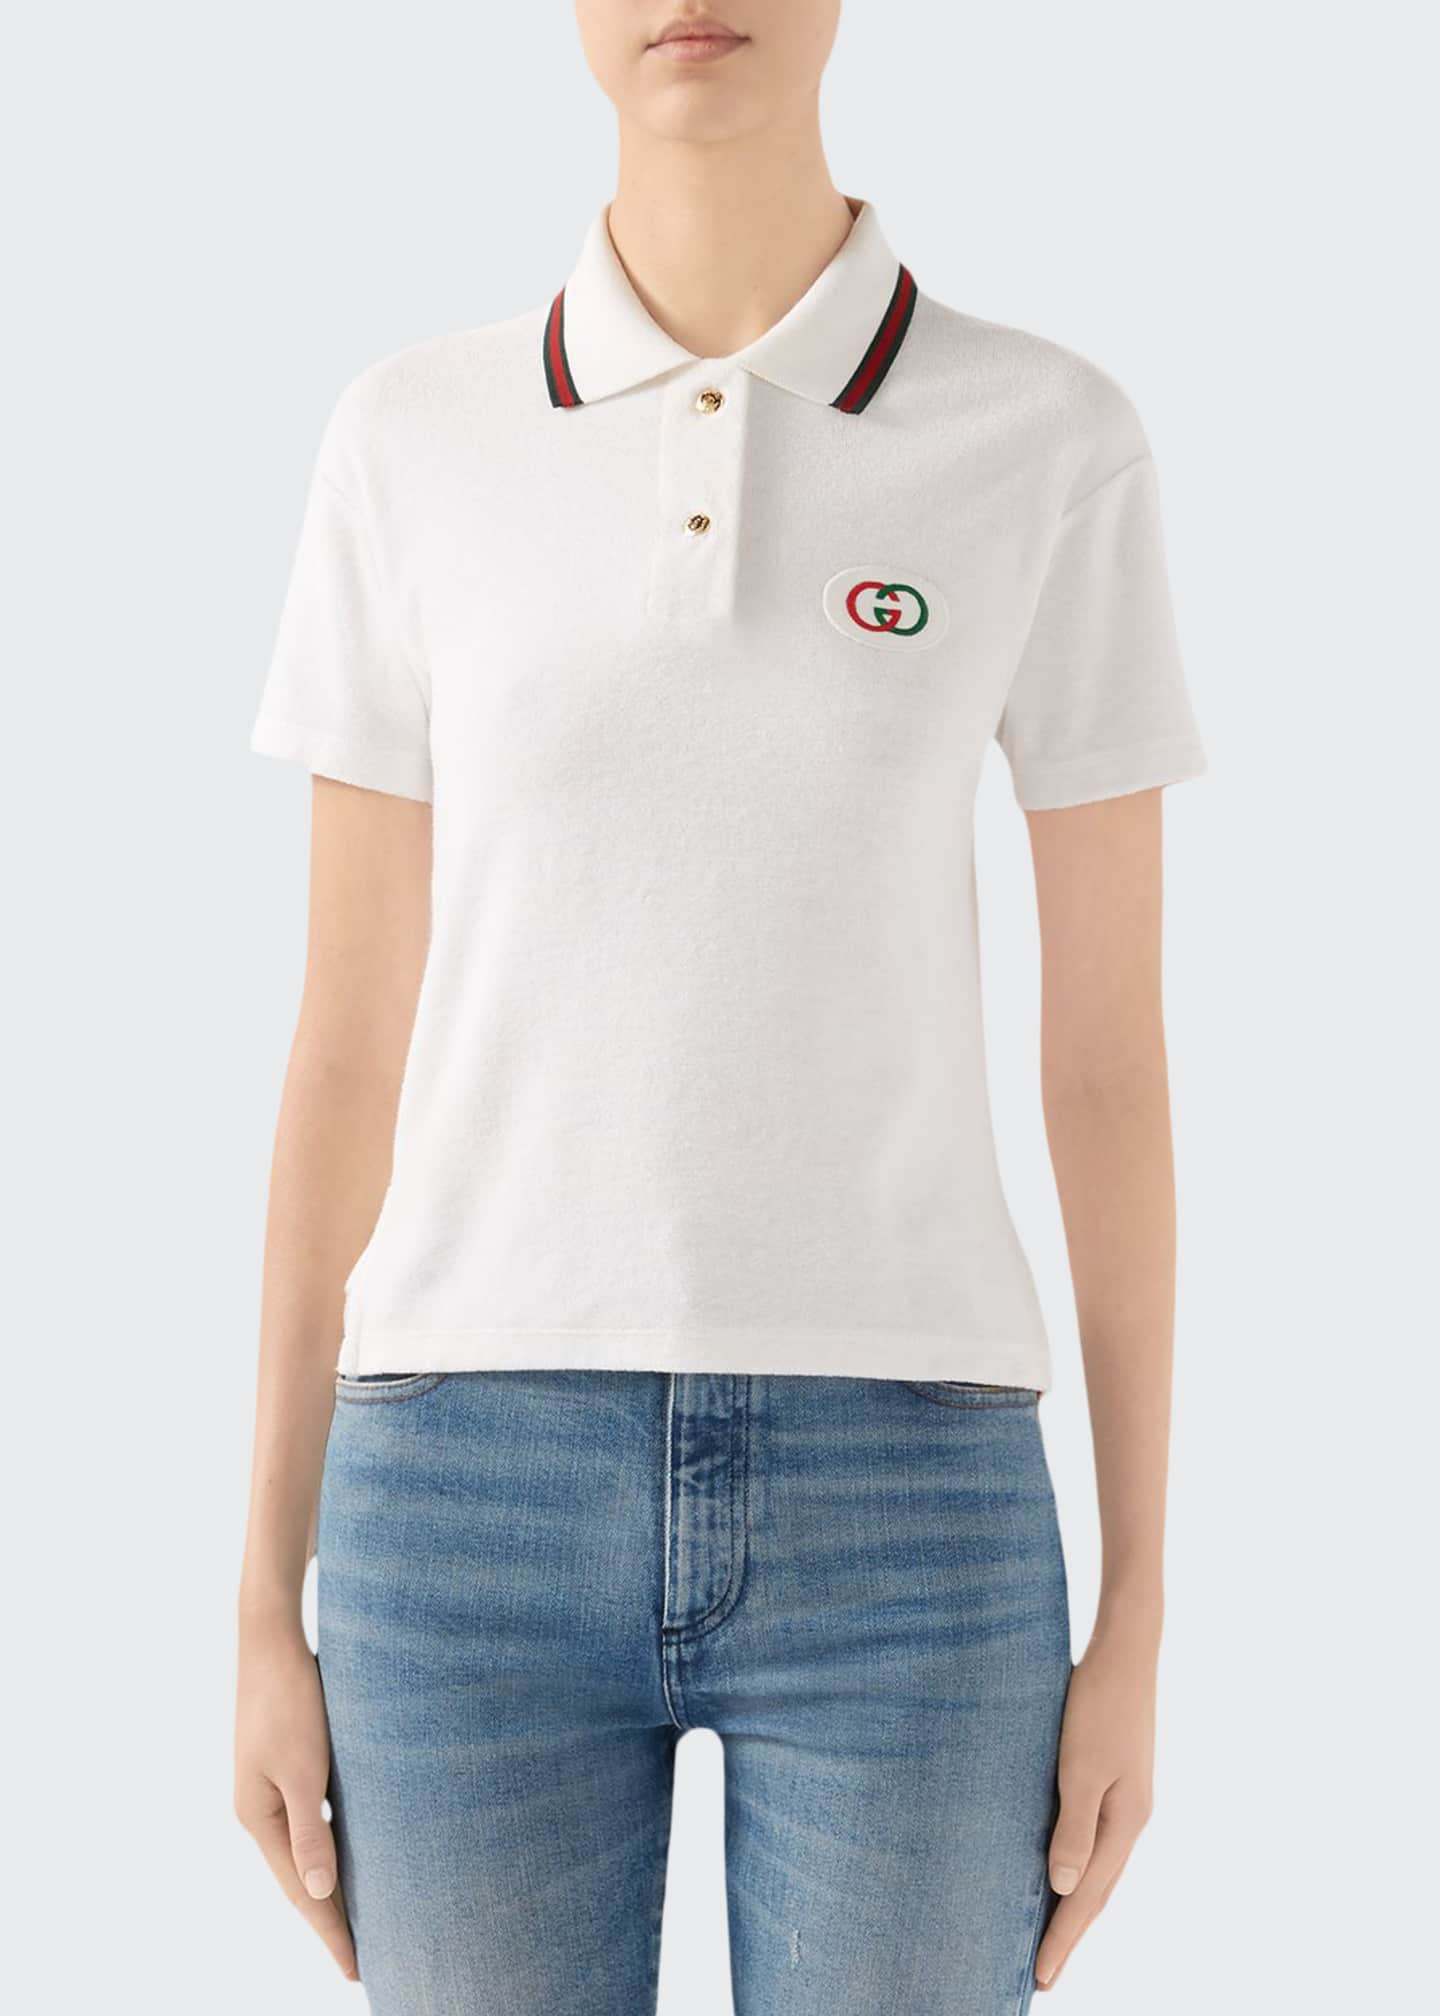 Image 1 of 4: Short-Sleeve Terry Cloth Tennis Polo Top